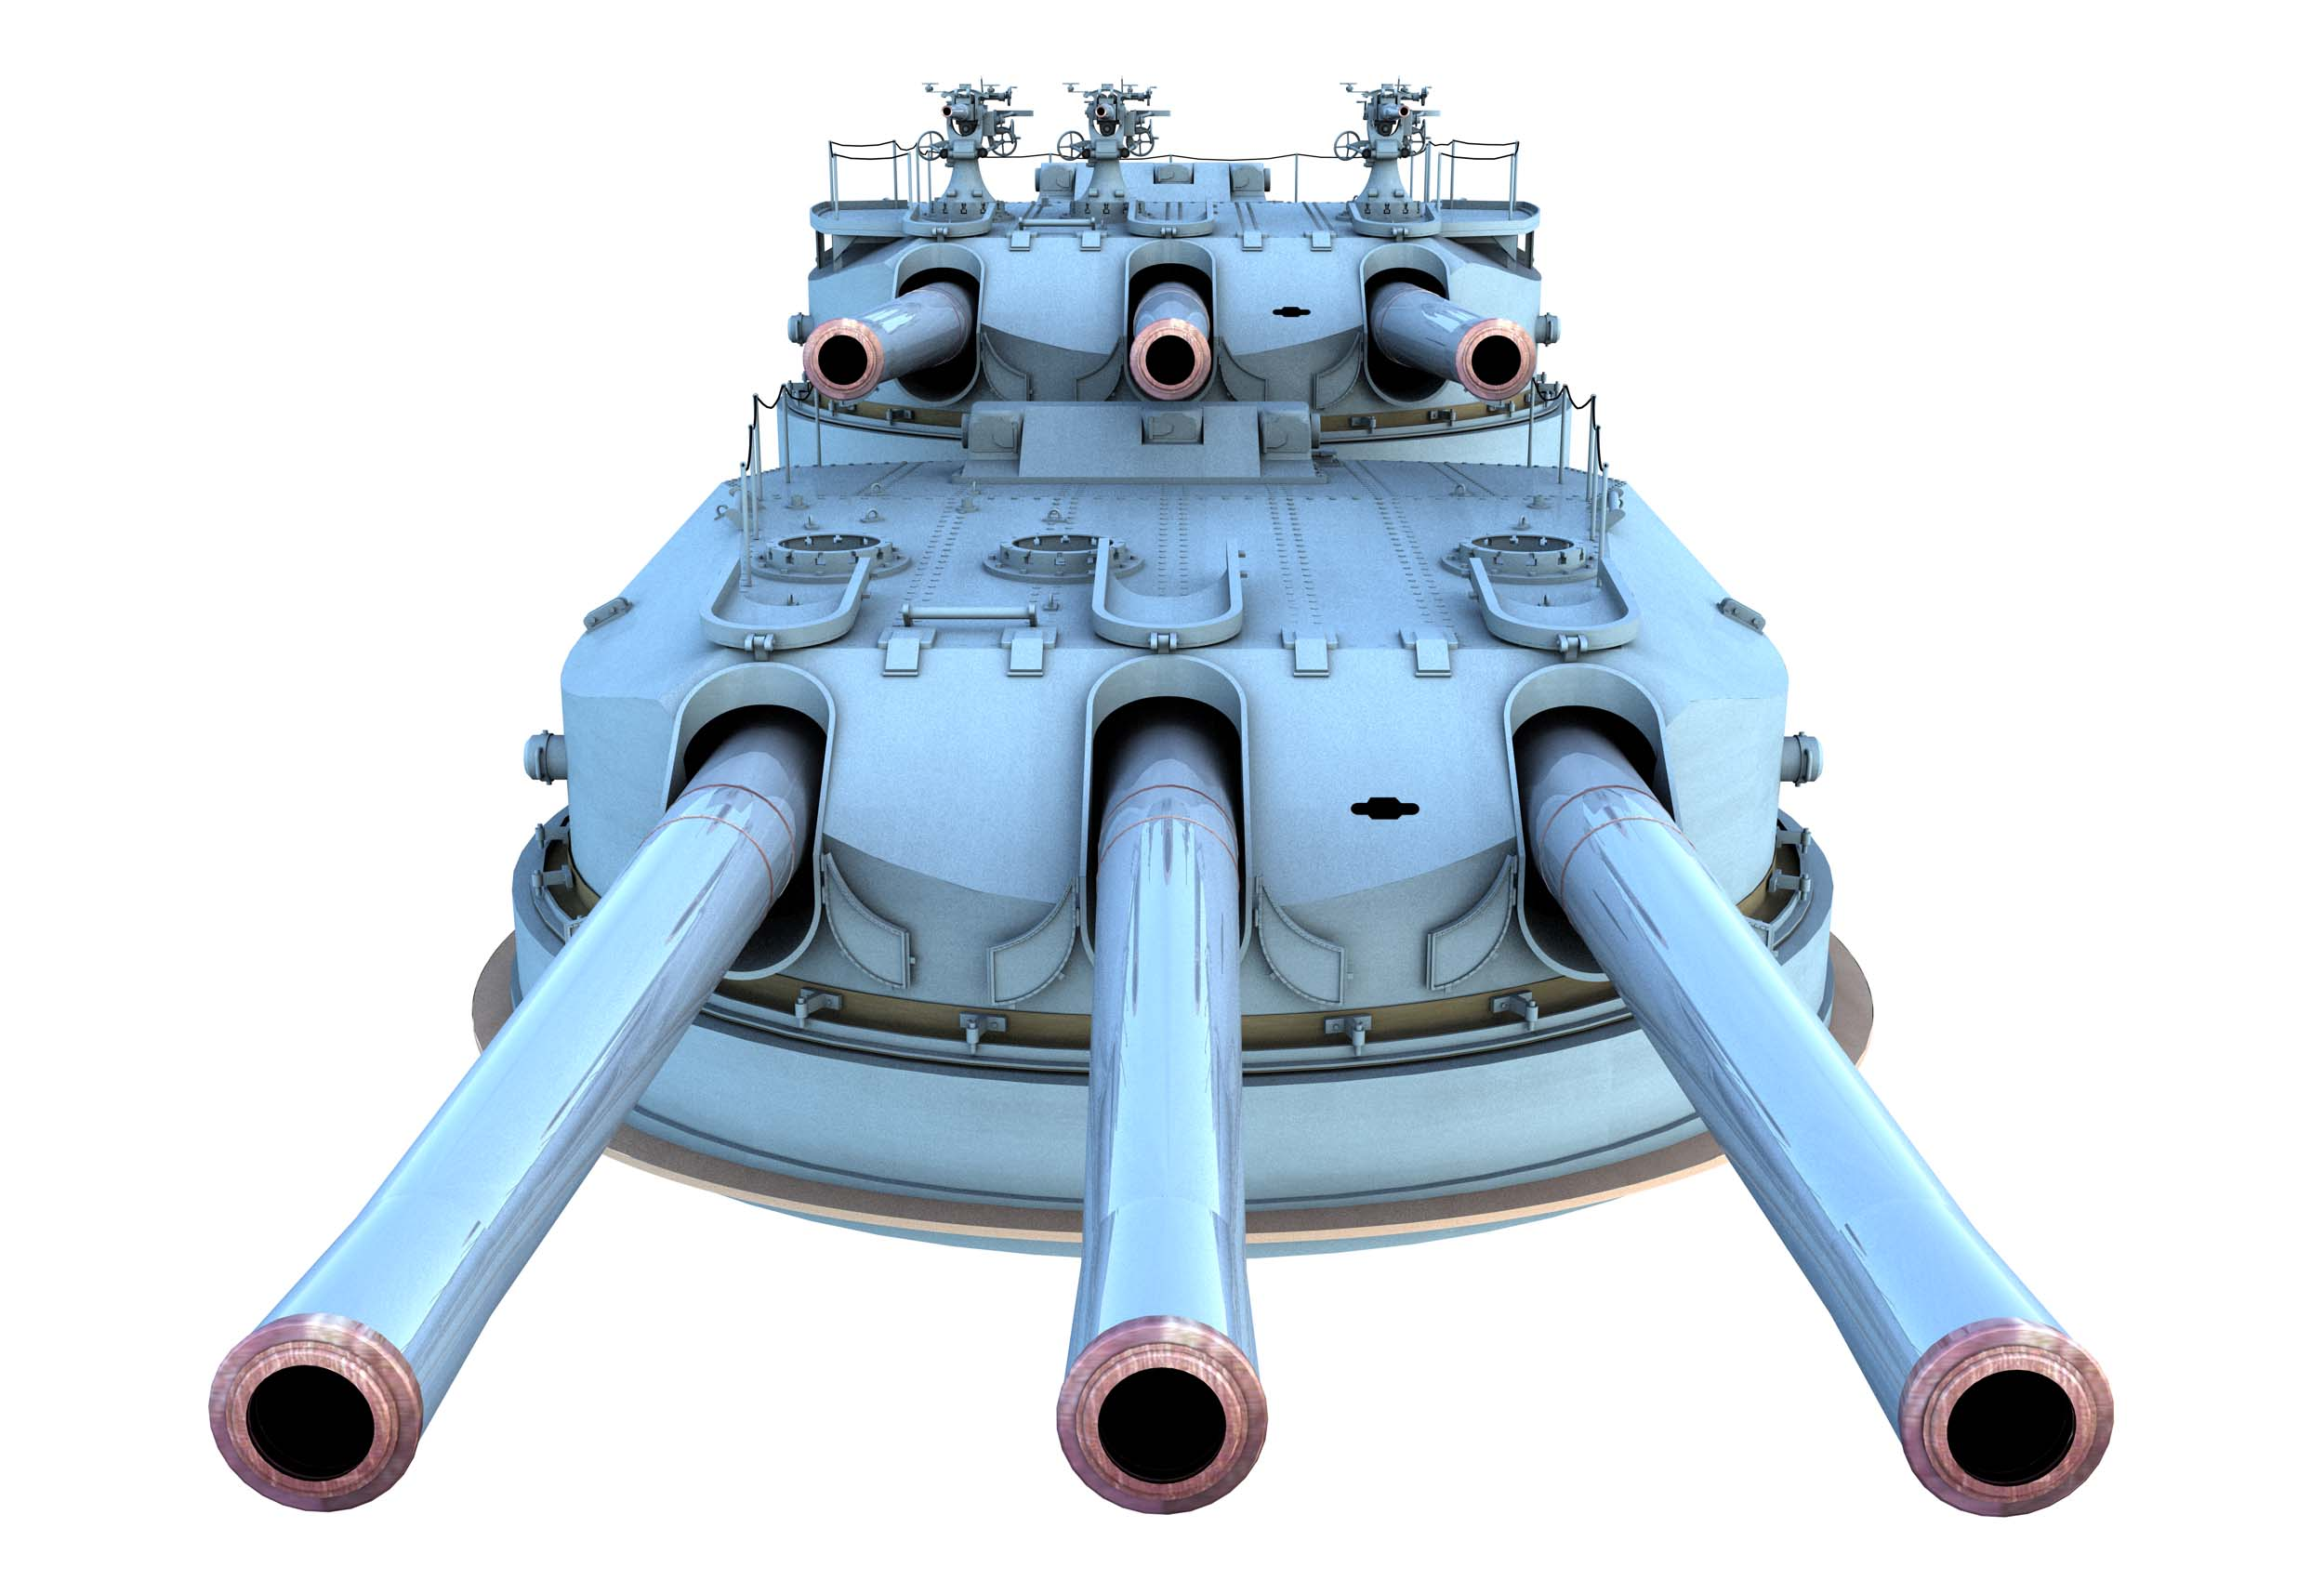 https://0901.nccdn.net/4_2/000/000/064/d40/CK99-Individual-Turrets-I-and-II-Front-Facing.jpg